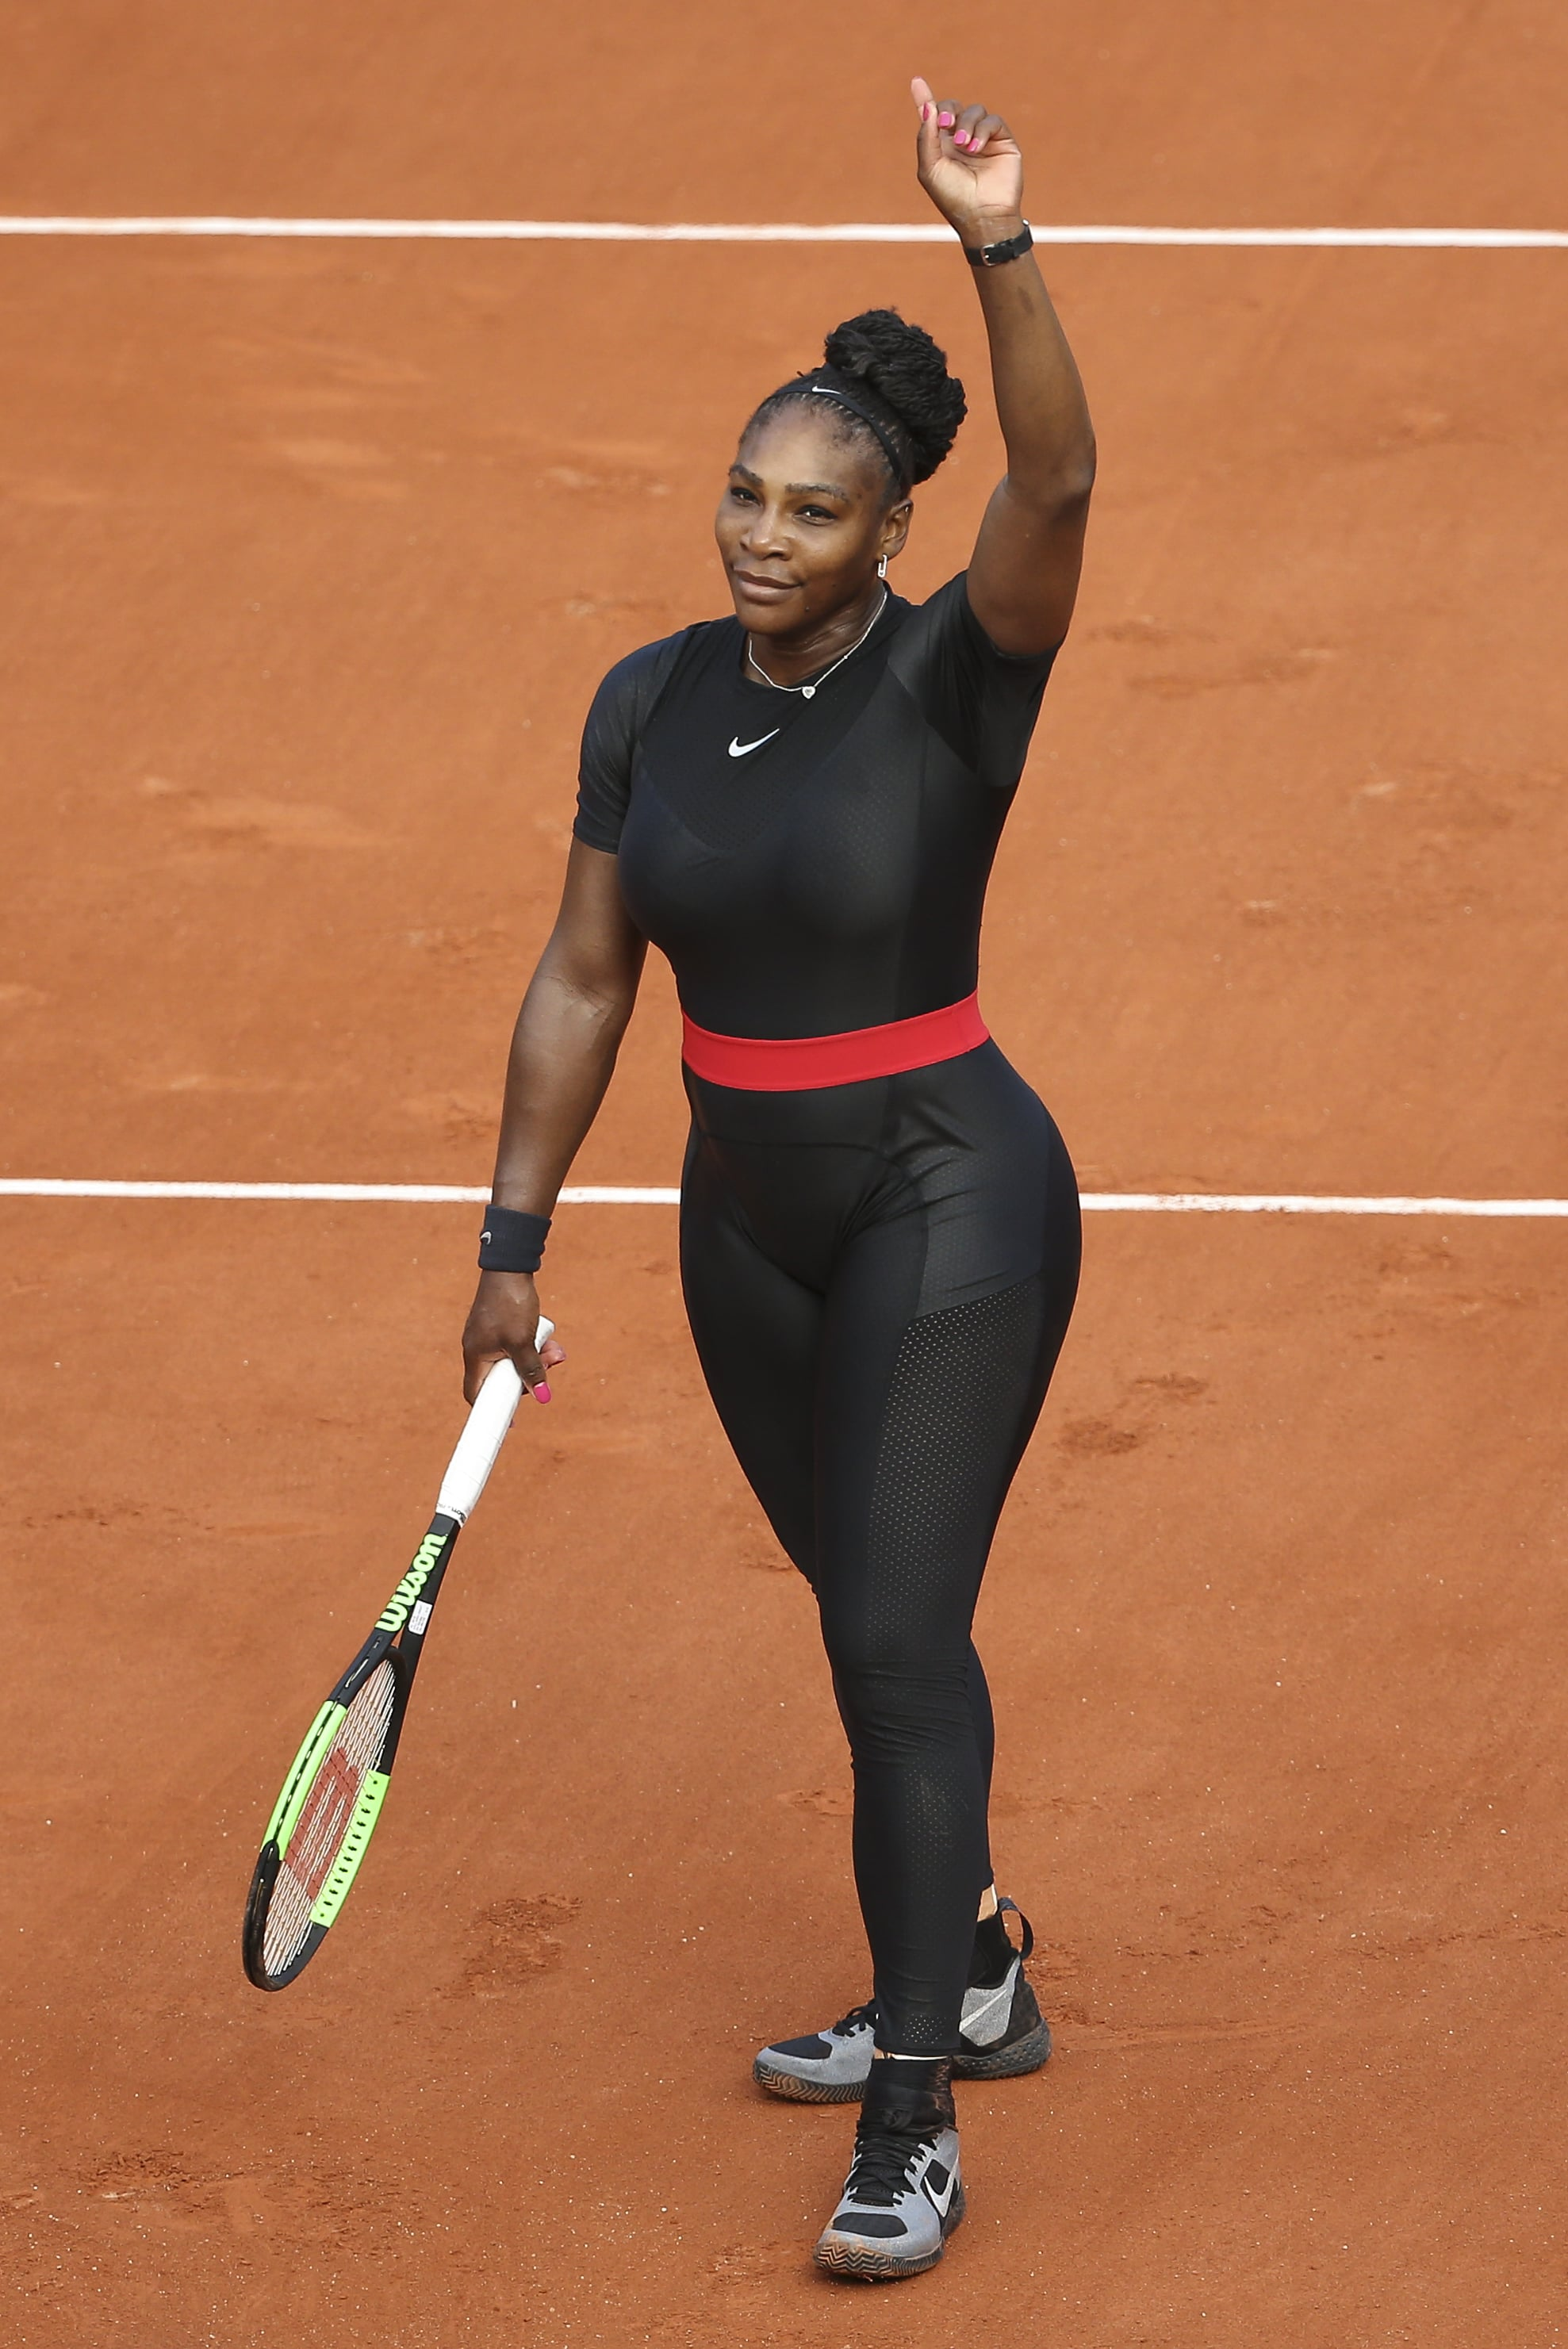 PARIS, FRANCE - MAY 29: Serena Williams of USA celebrates her first round victory during Day Three of the 2018 French Open at Roland Garros on May 29, 2018 in Paris, France. (Photo by Jean Catuffe/Getty Images)